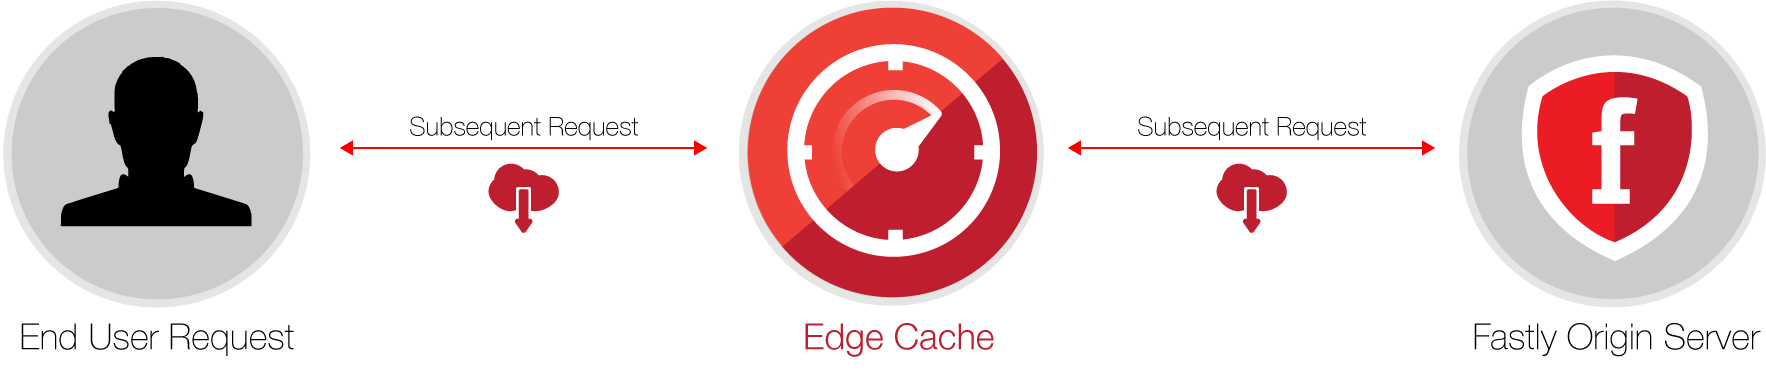 Caching basics, subsequent requests